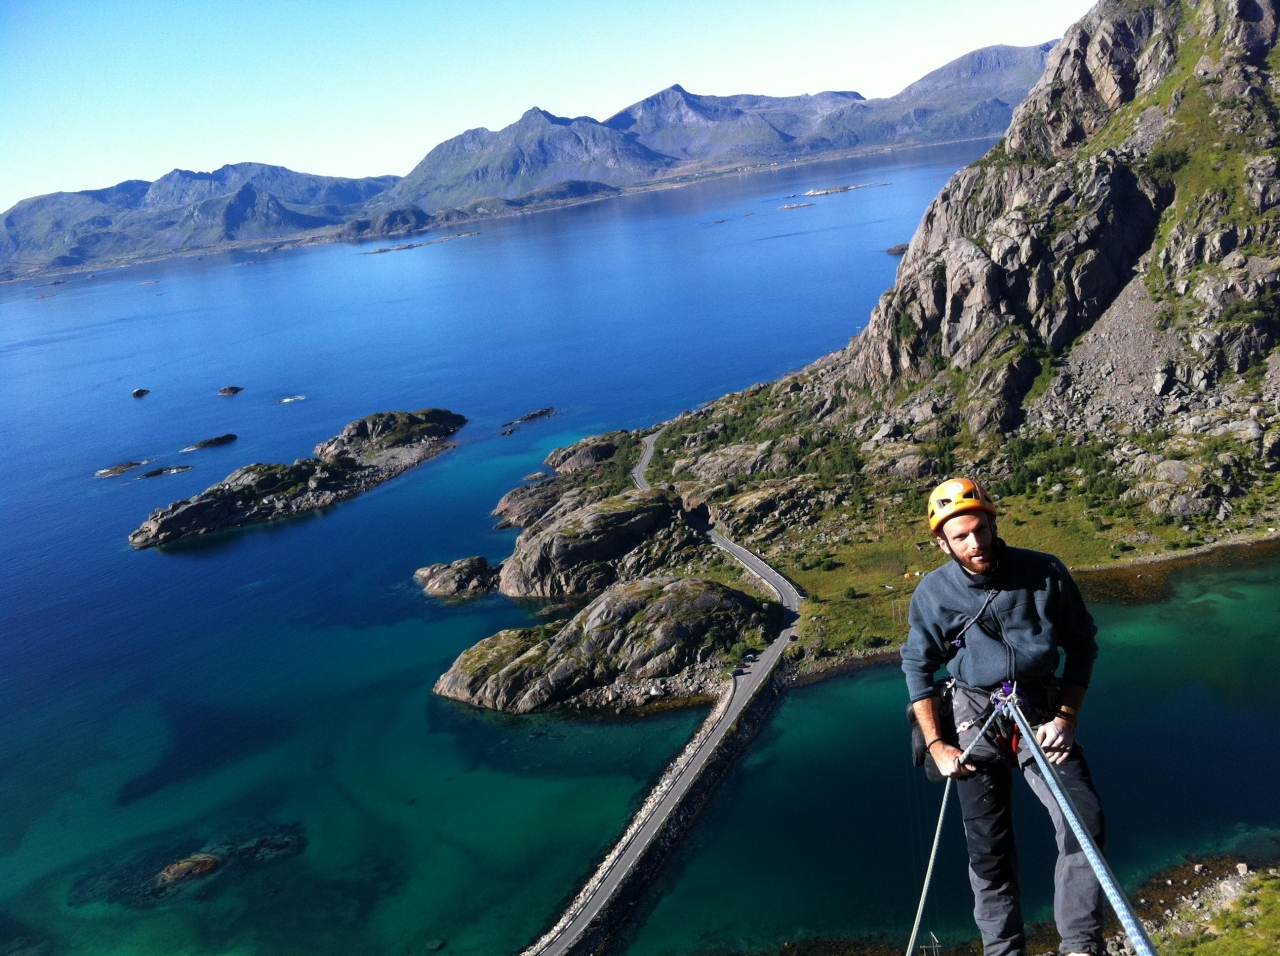 A picture from Lofoten Islands by Filippo Ghilardini